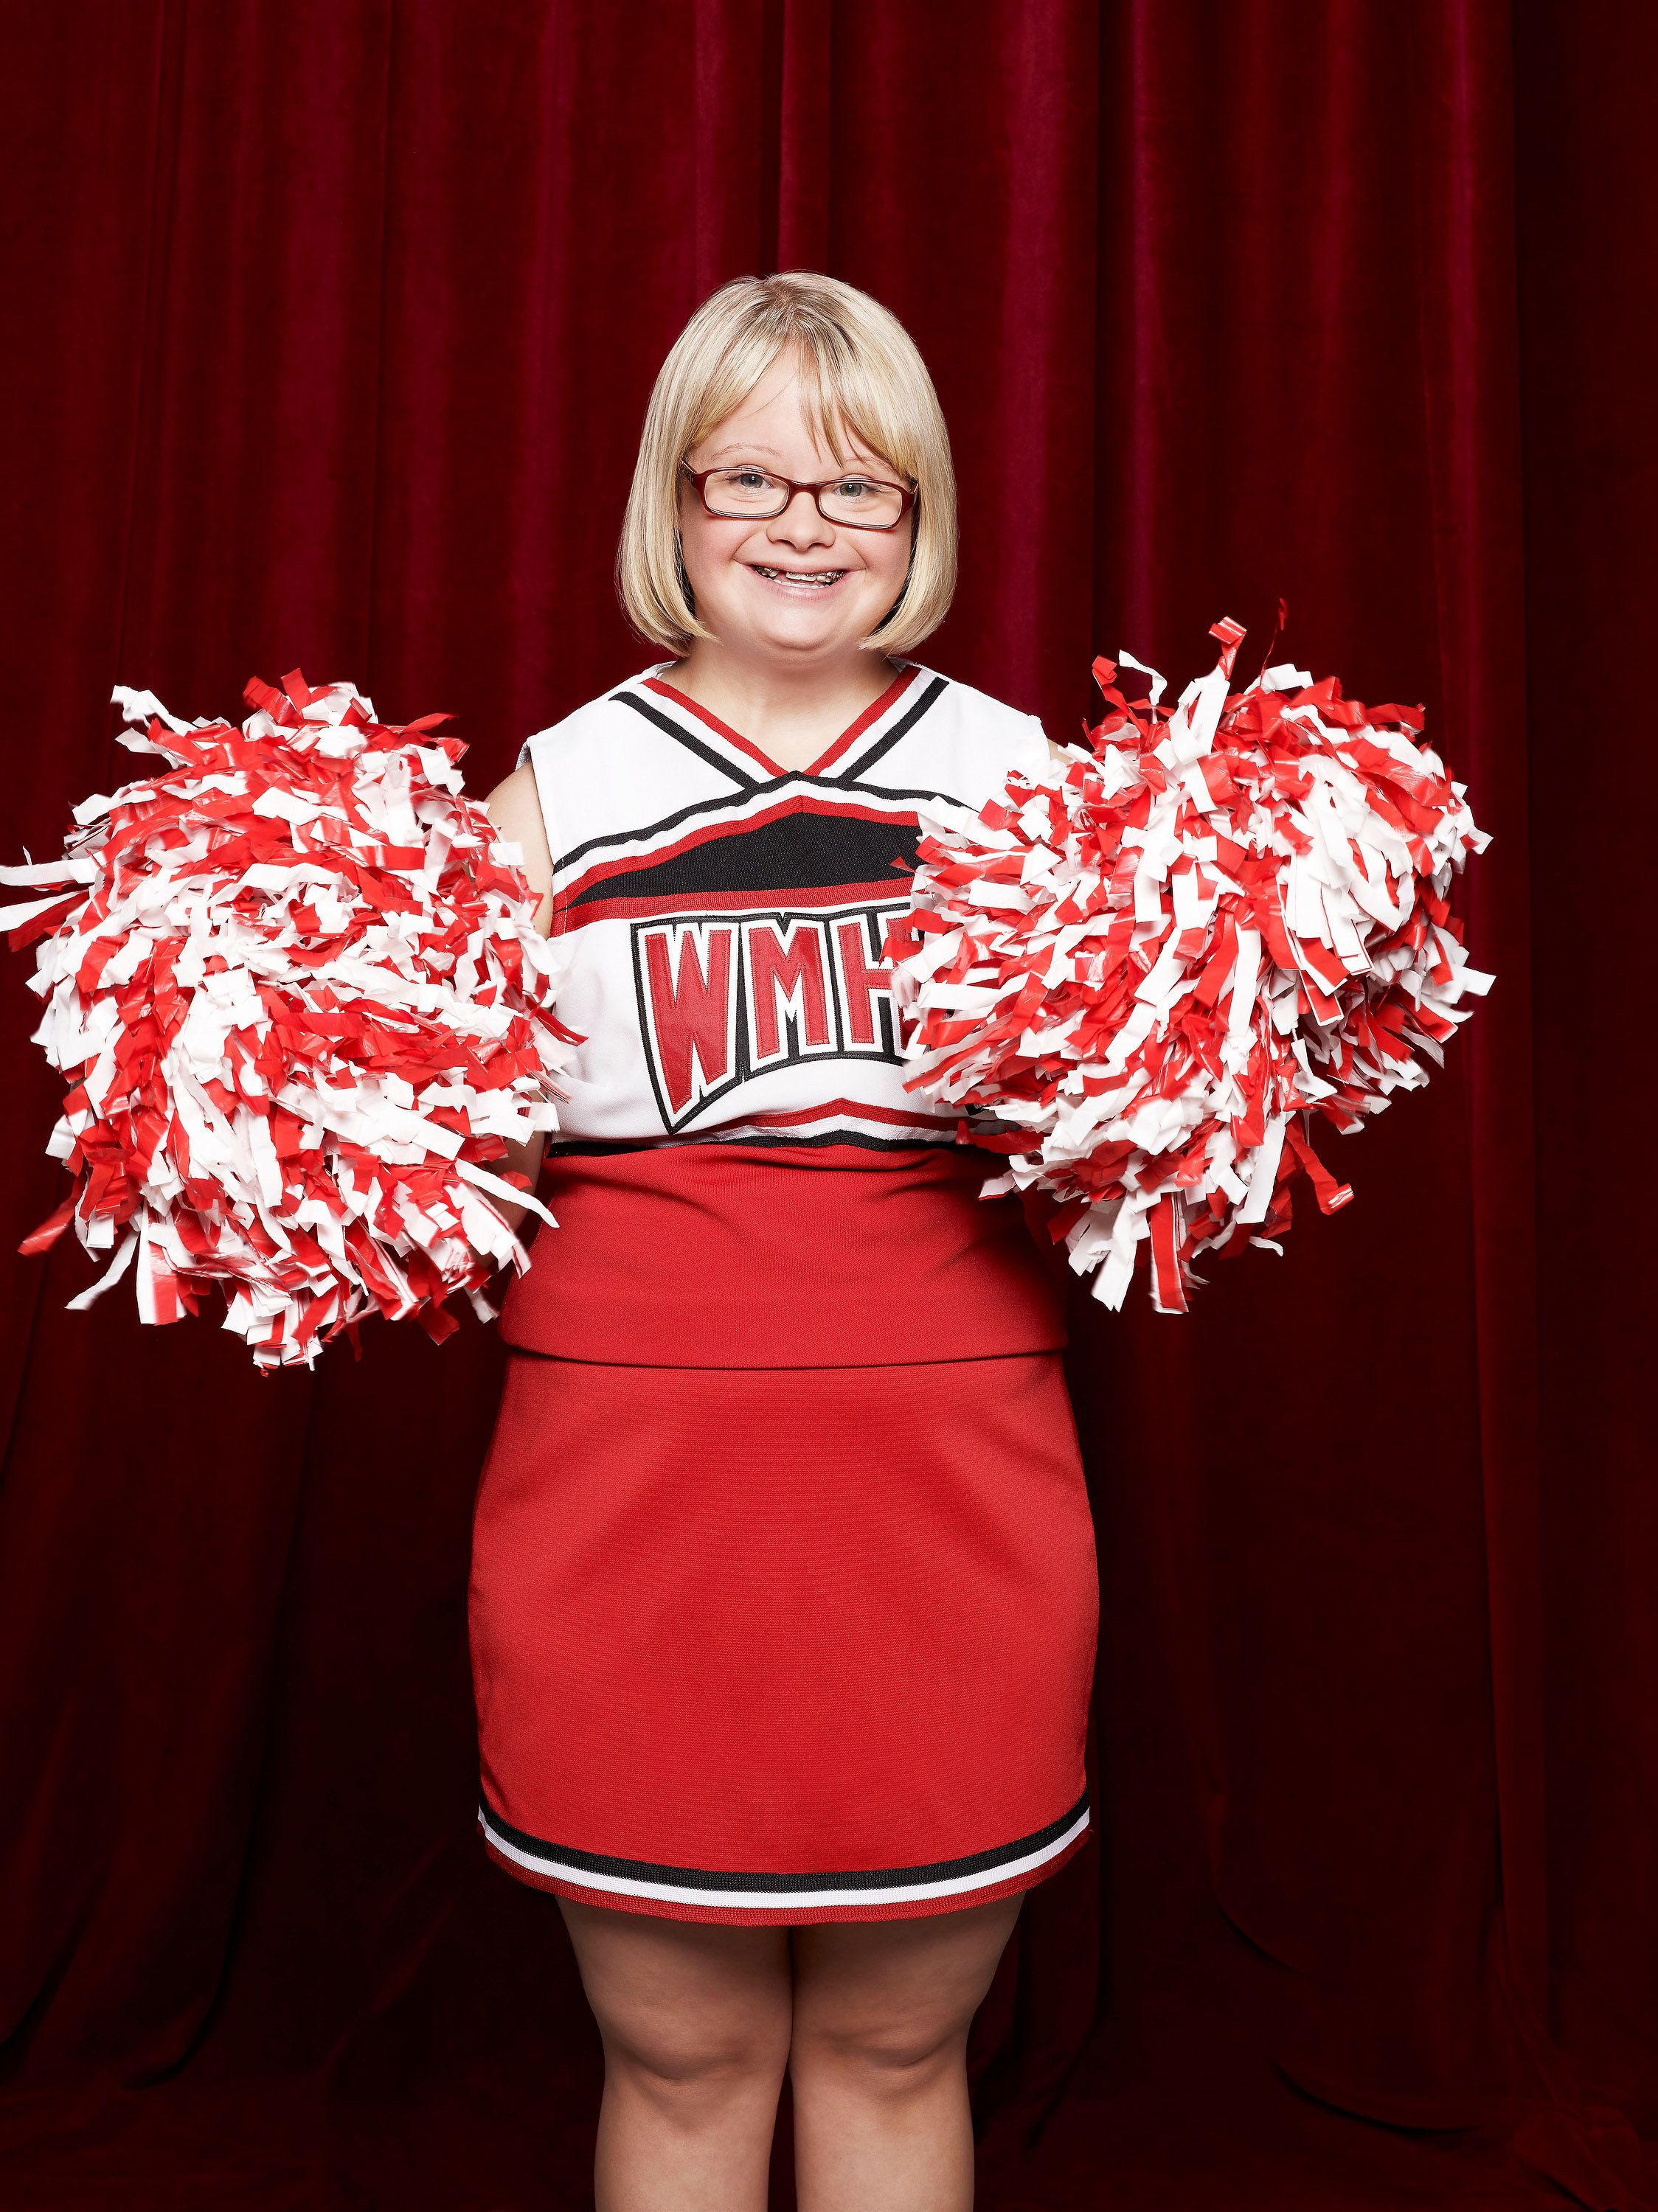 Lauren Potter, AKA Becky From 'Glee,' Got Engaged To Her Childhood Friend | HuffPost